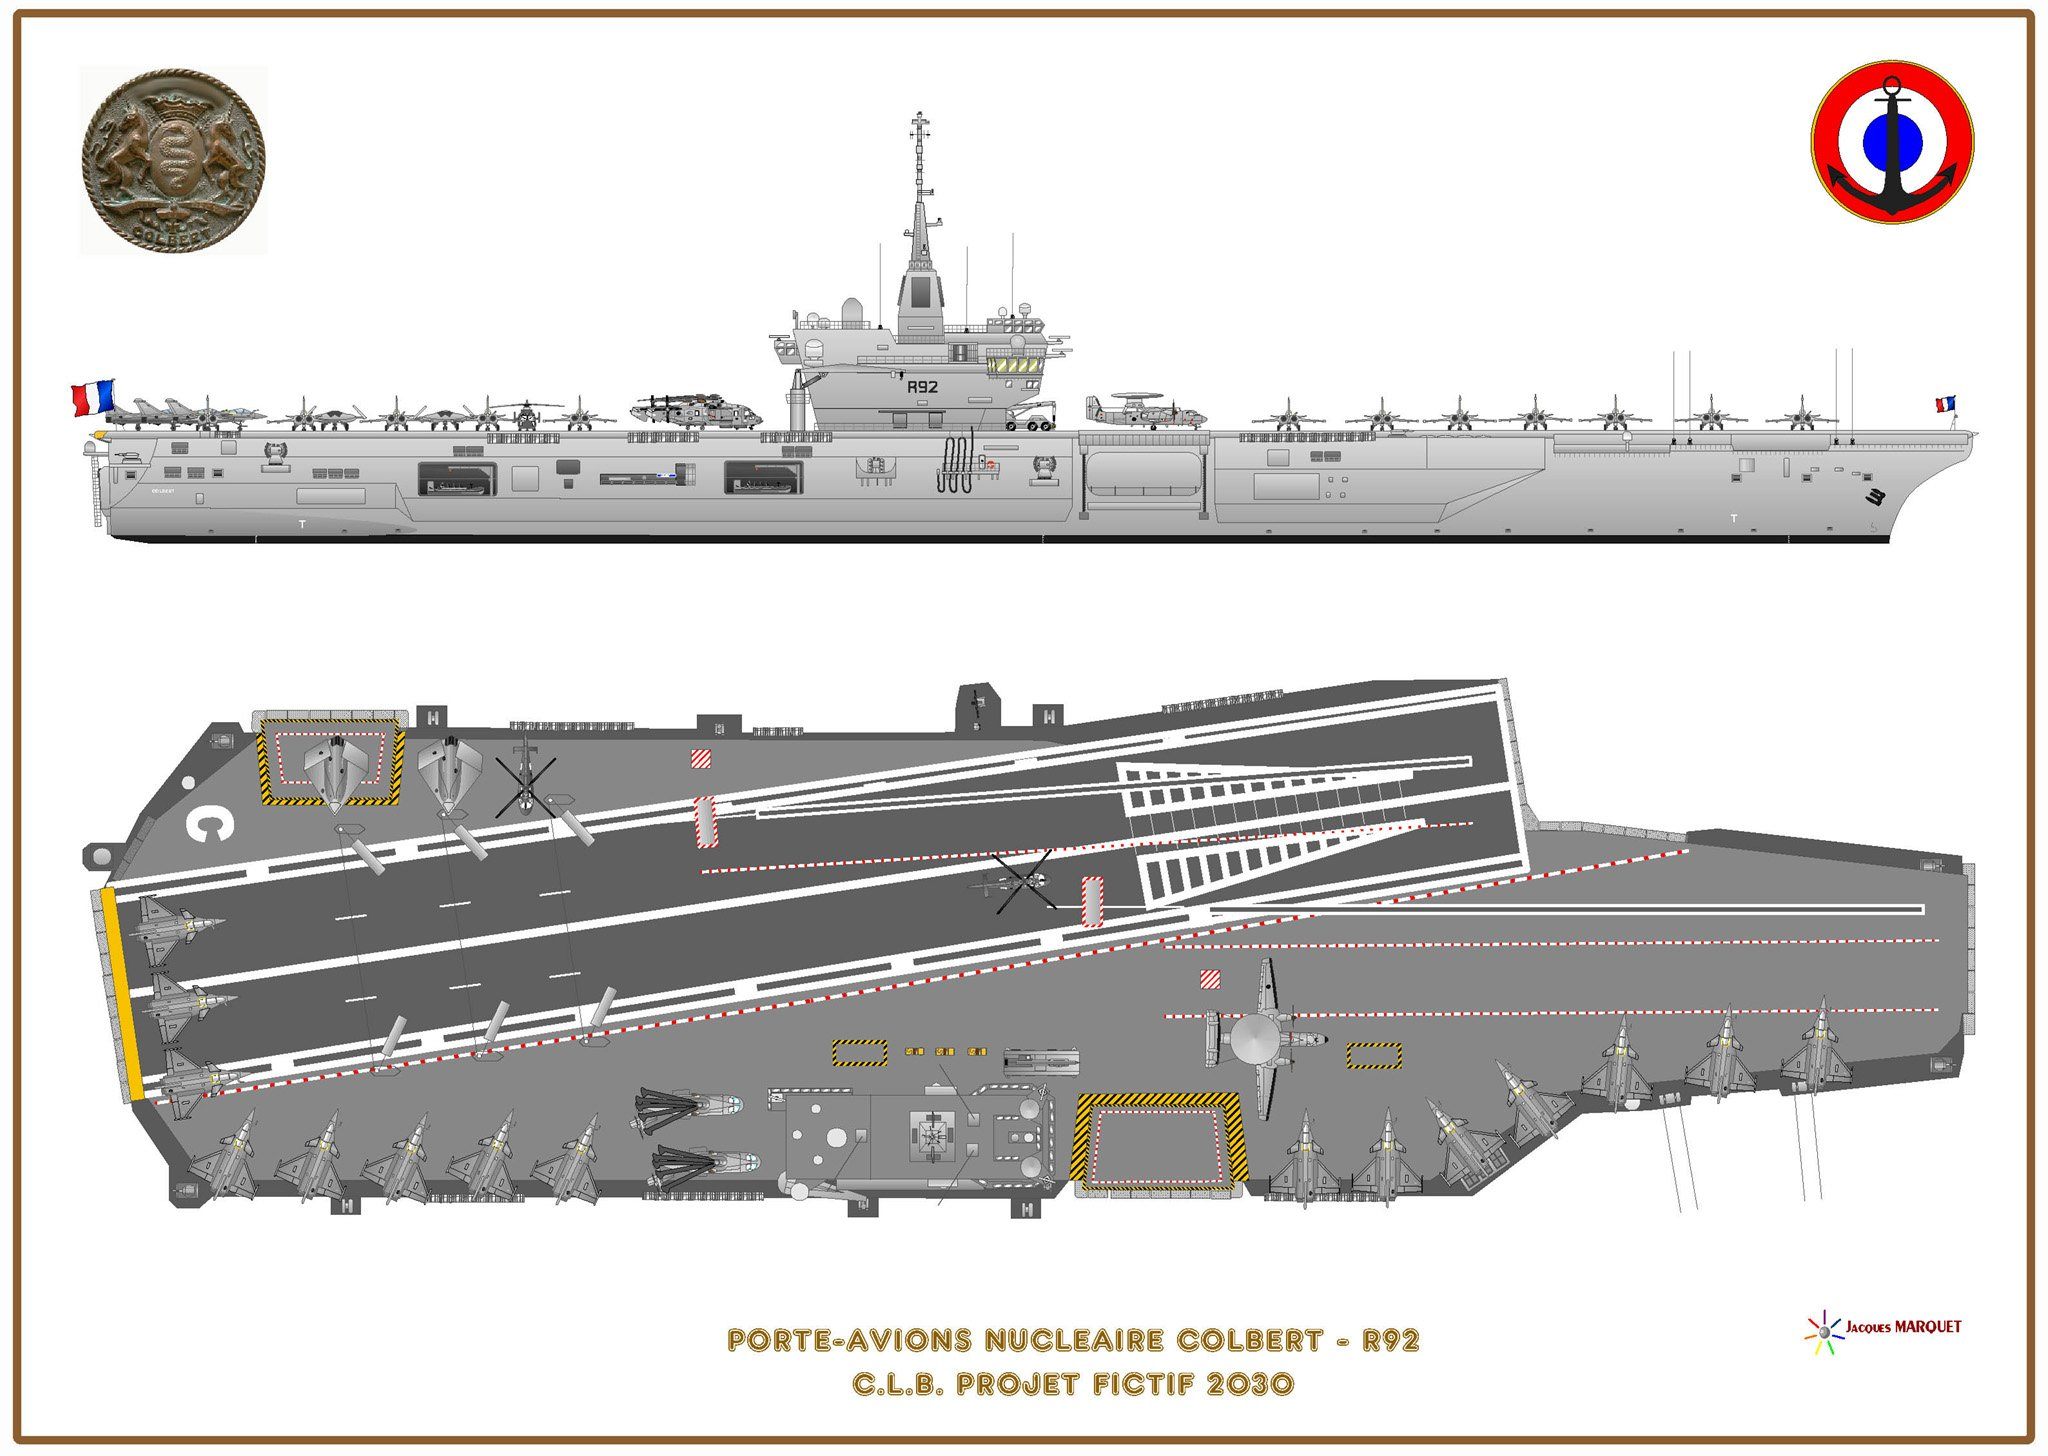 France meets with some difficulties in design of its new aircraft carrier - Porte avion francais en construction ...